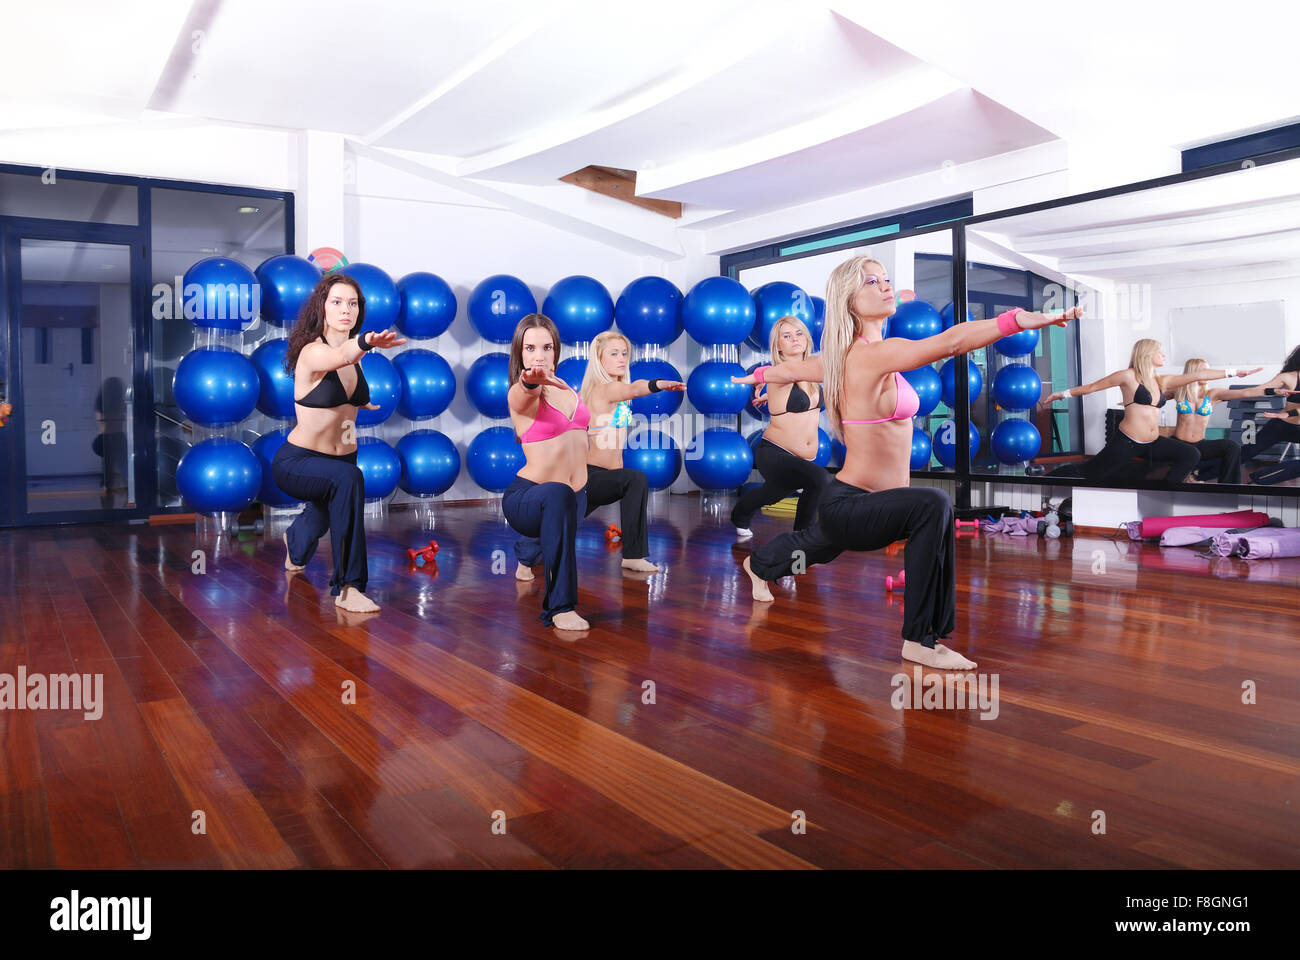 health club: women doing stretching, fitness, aerobics and